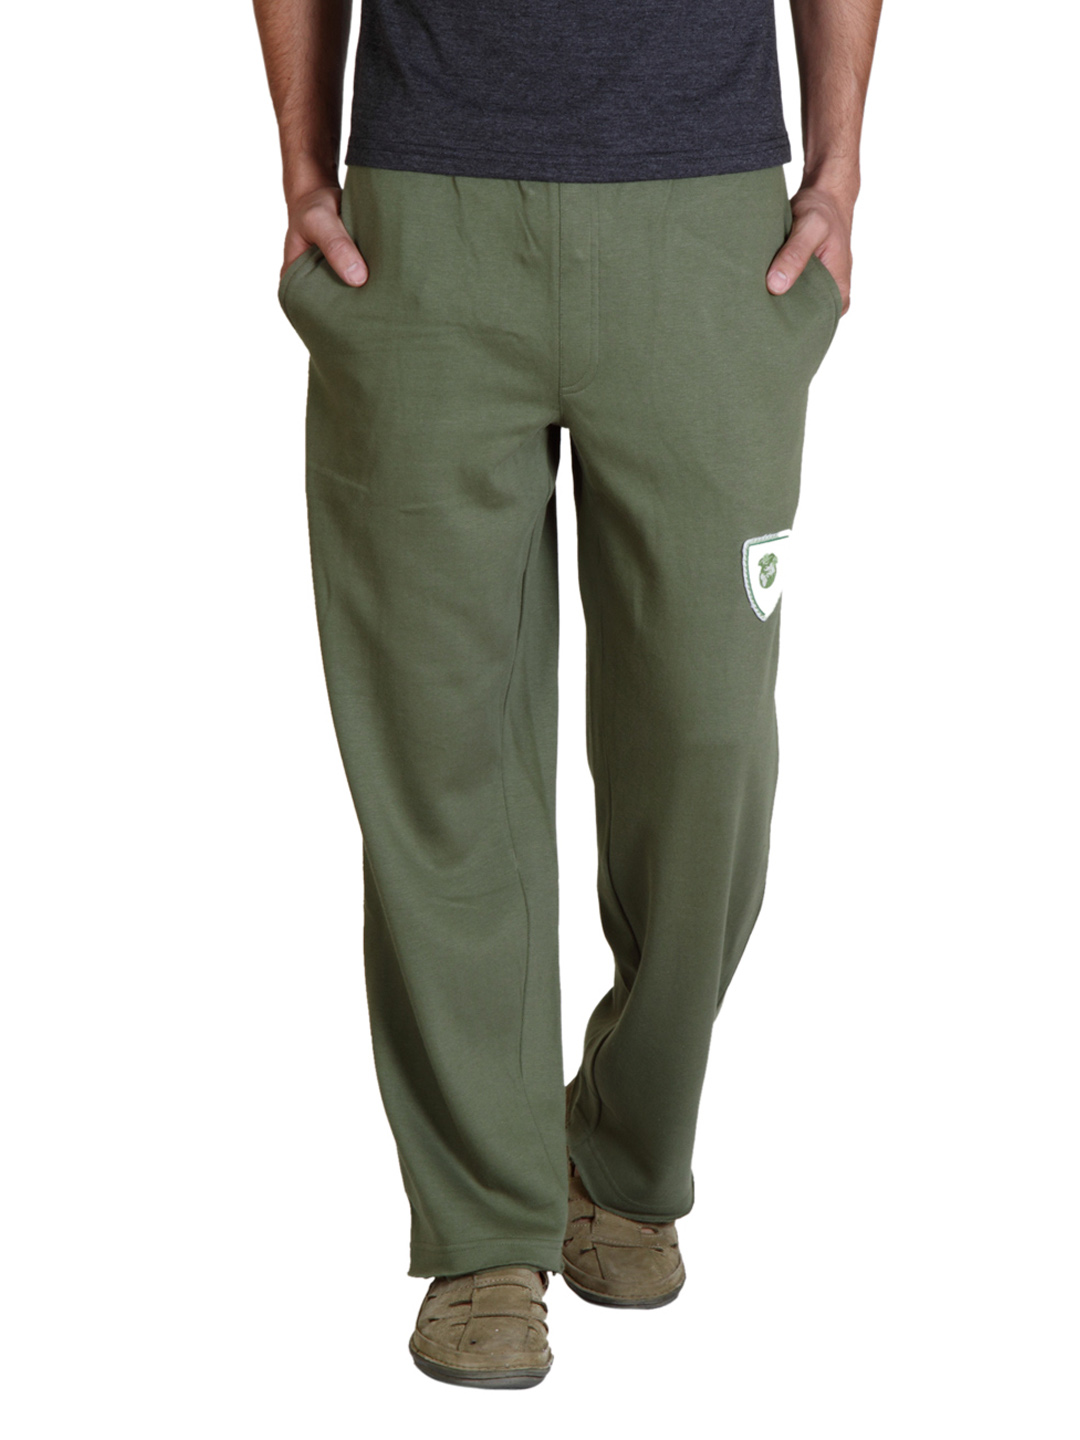 Do U Speak Green Men Green Lounge Pants